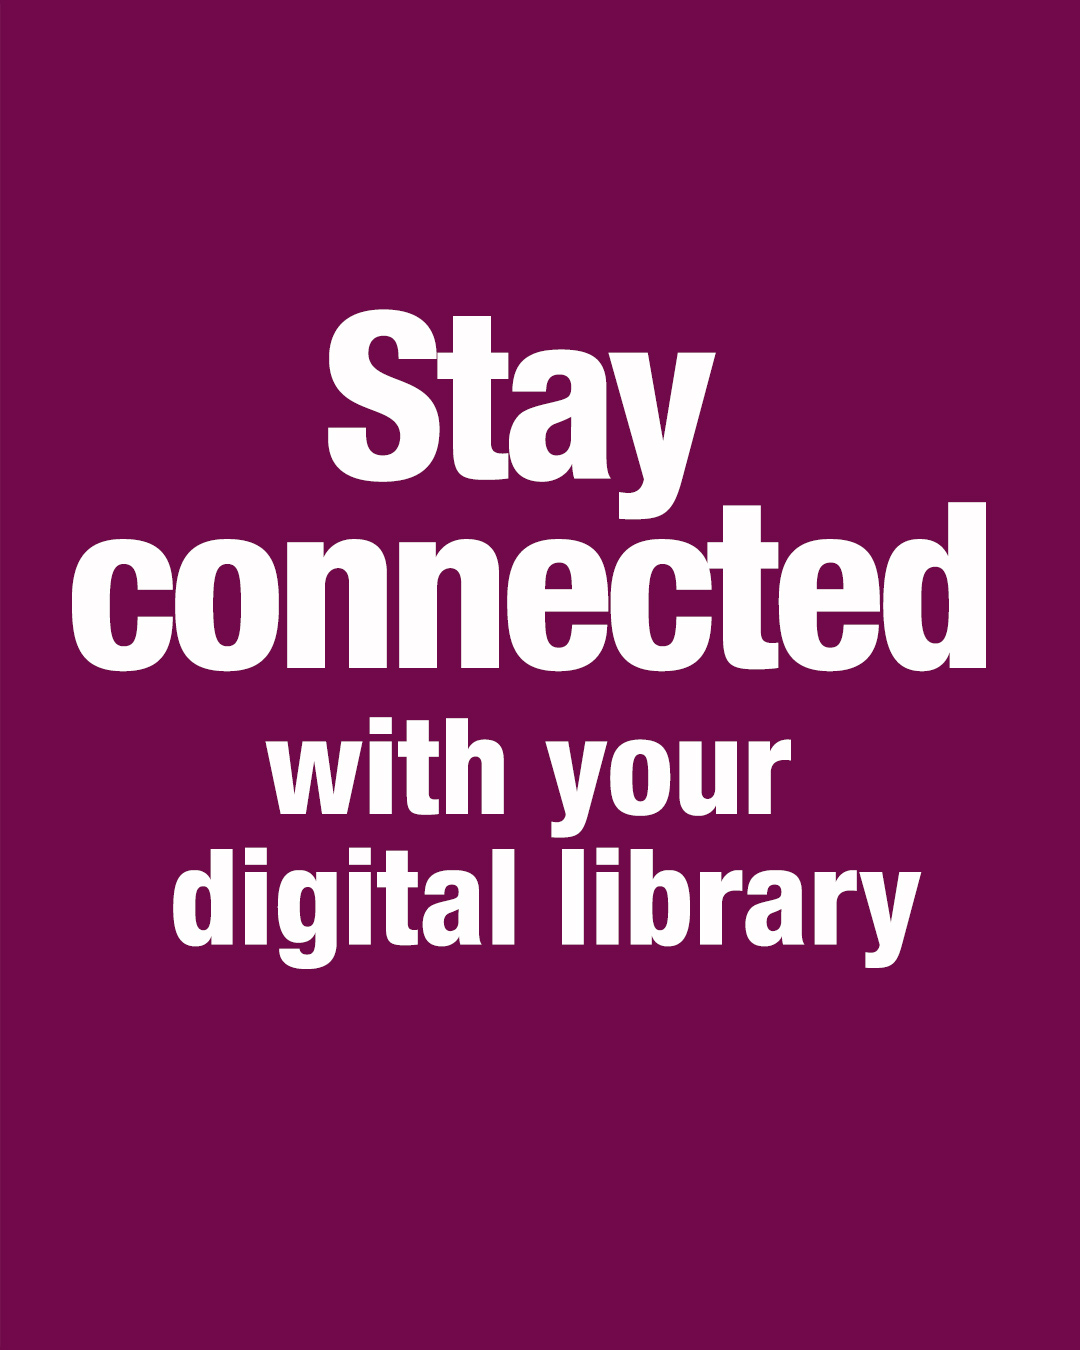 Stay connected with your digital library